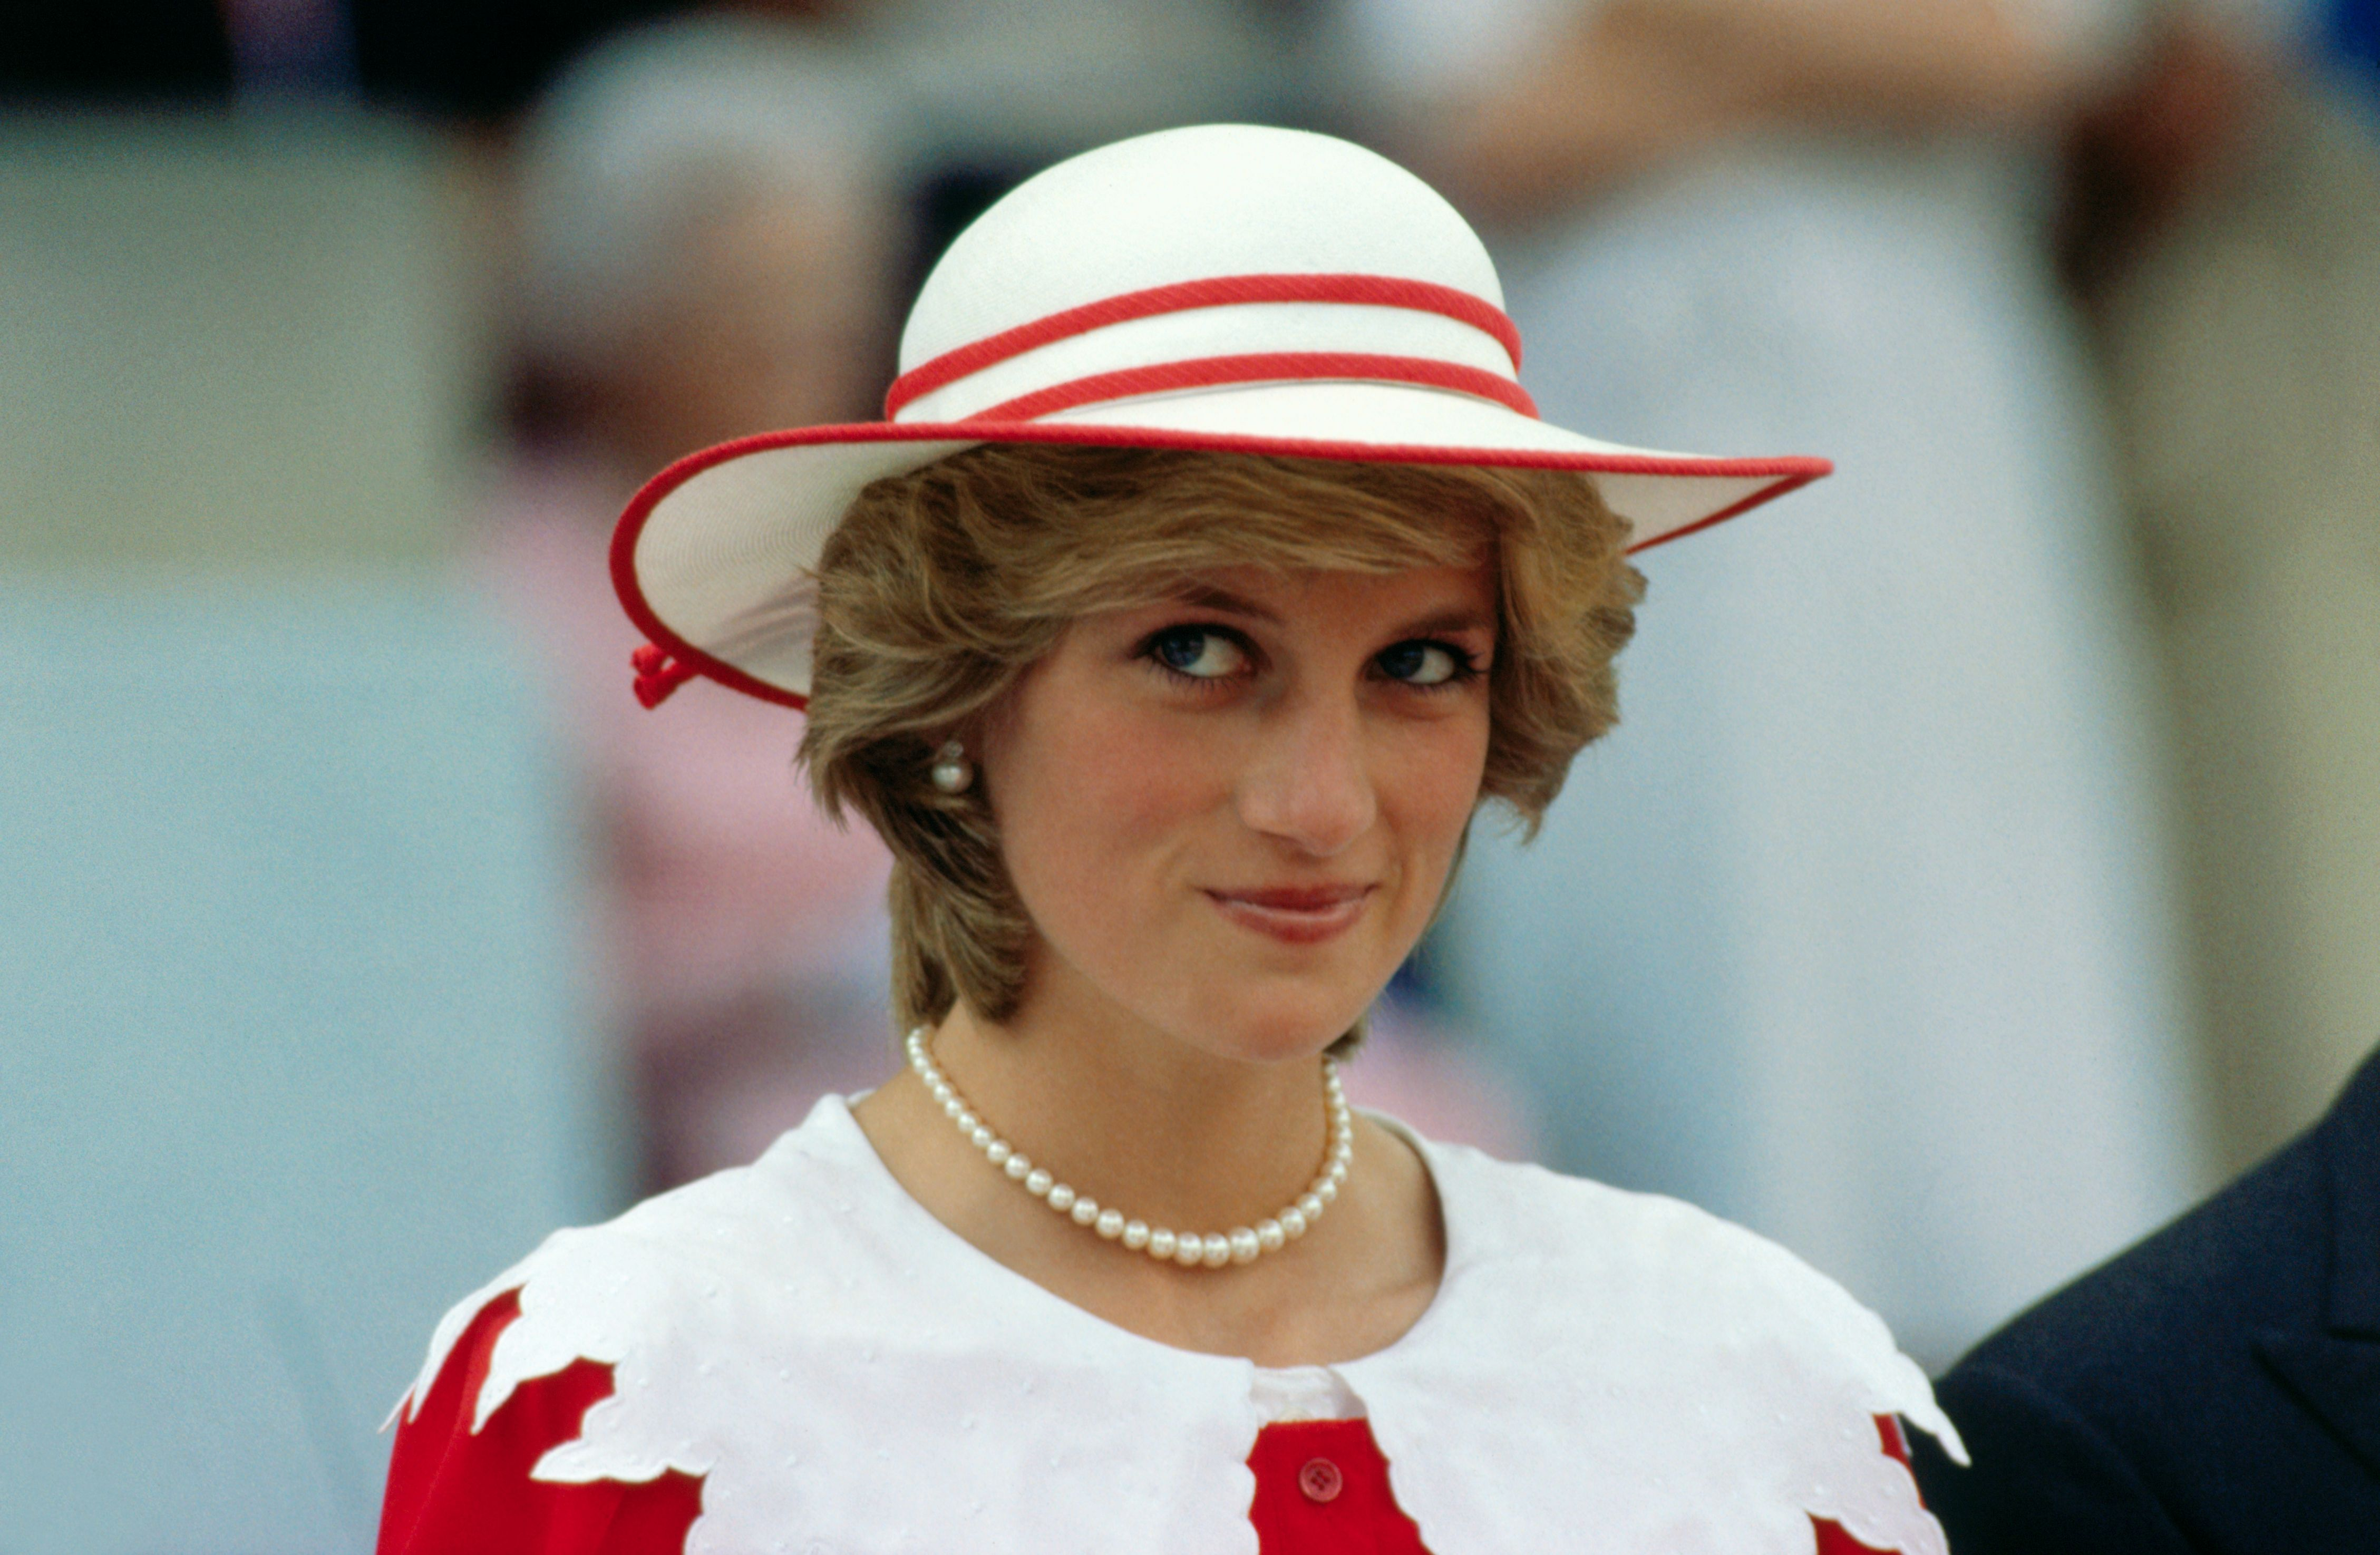 Princess DIana in a red and whte hat smiling